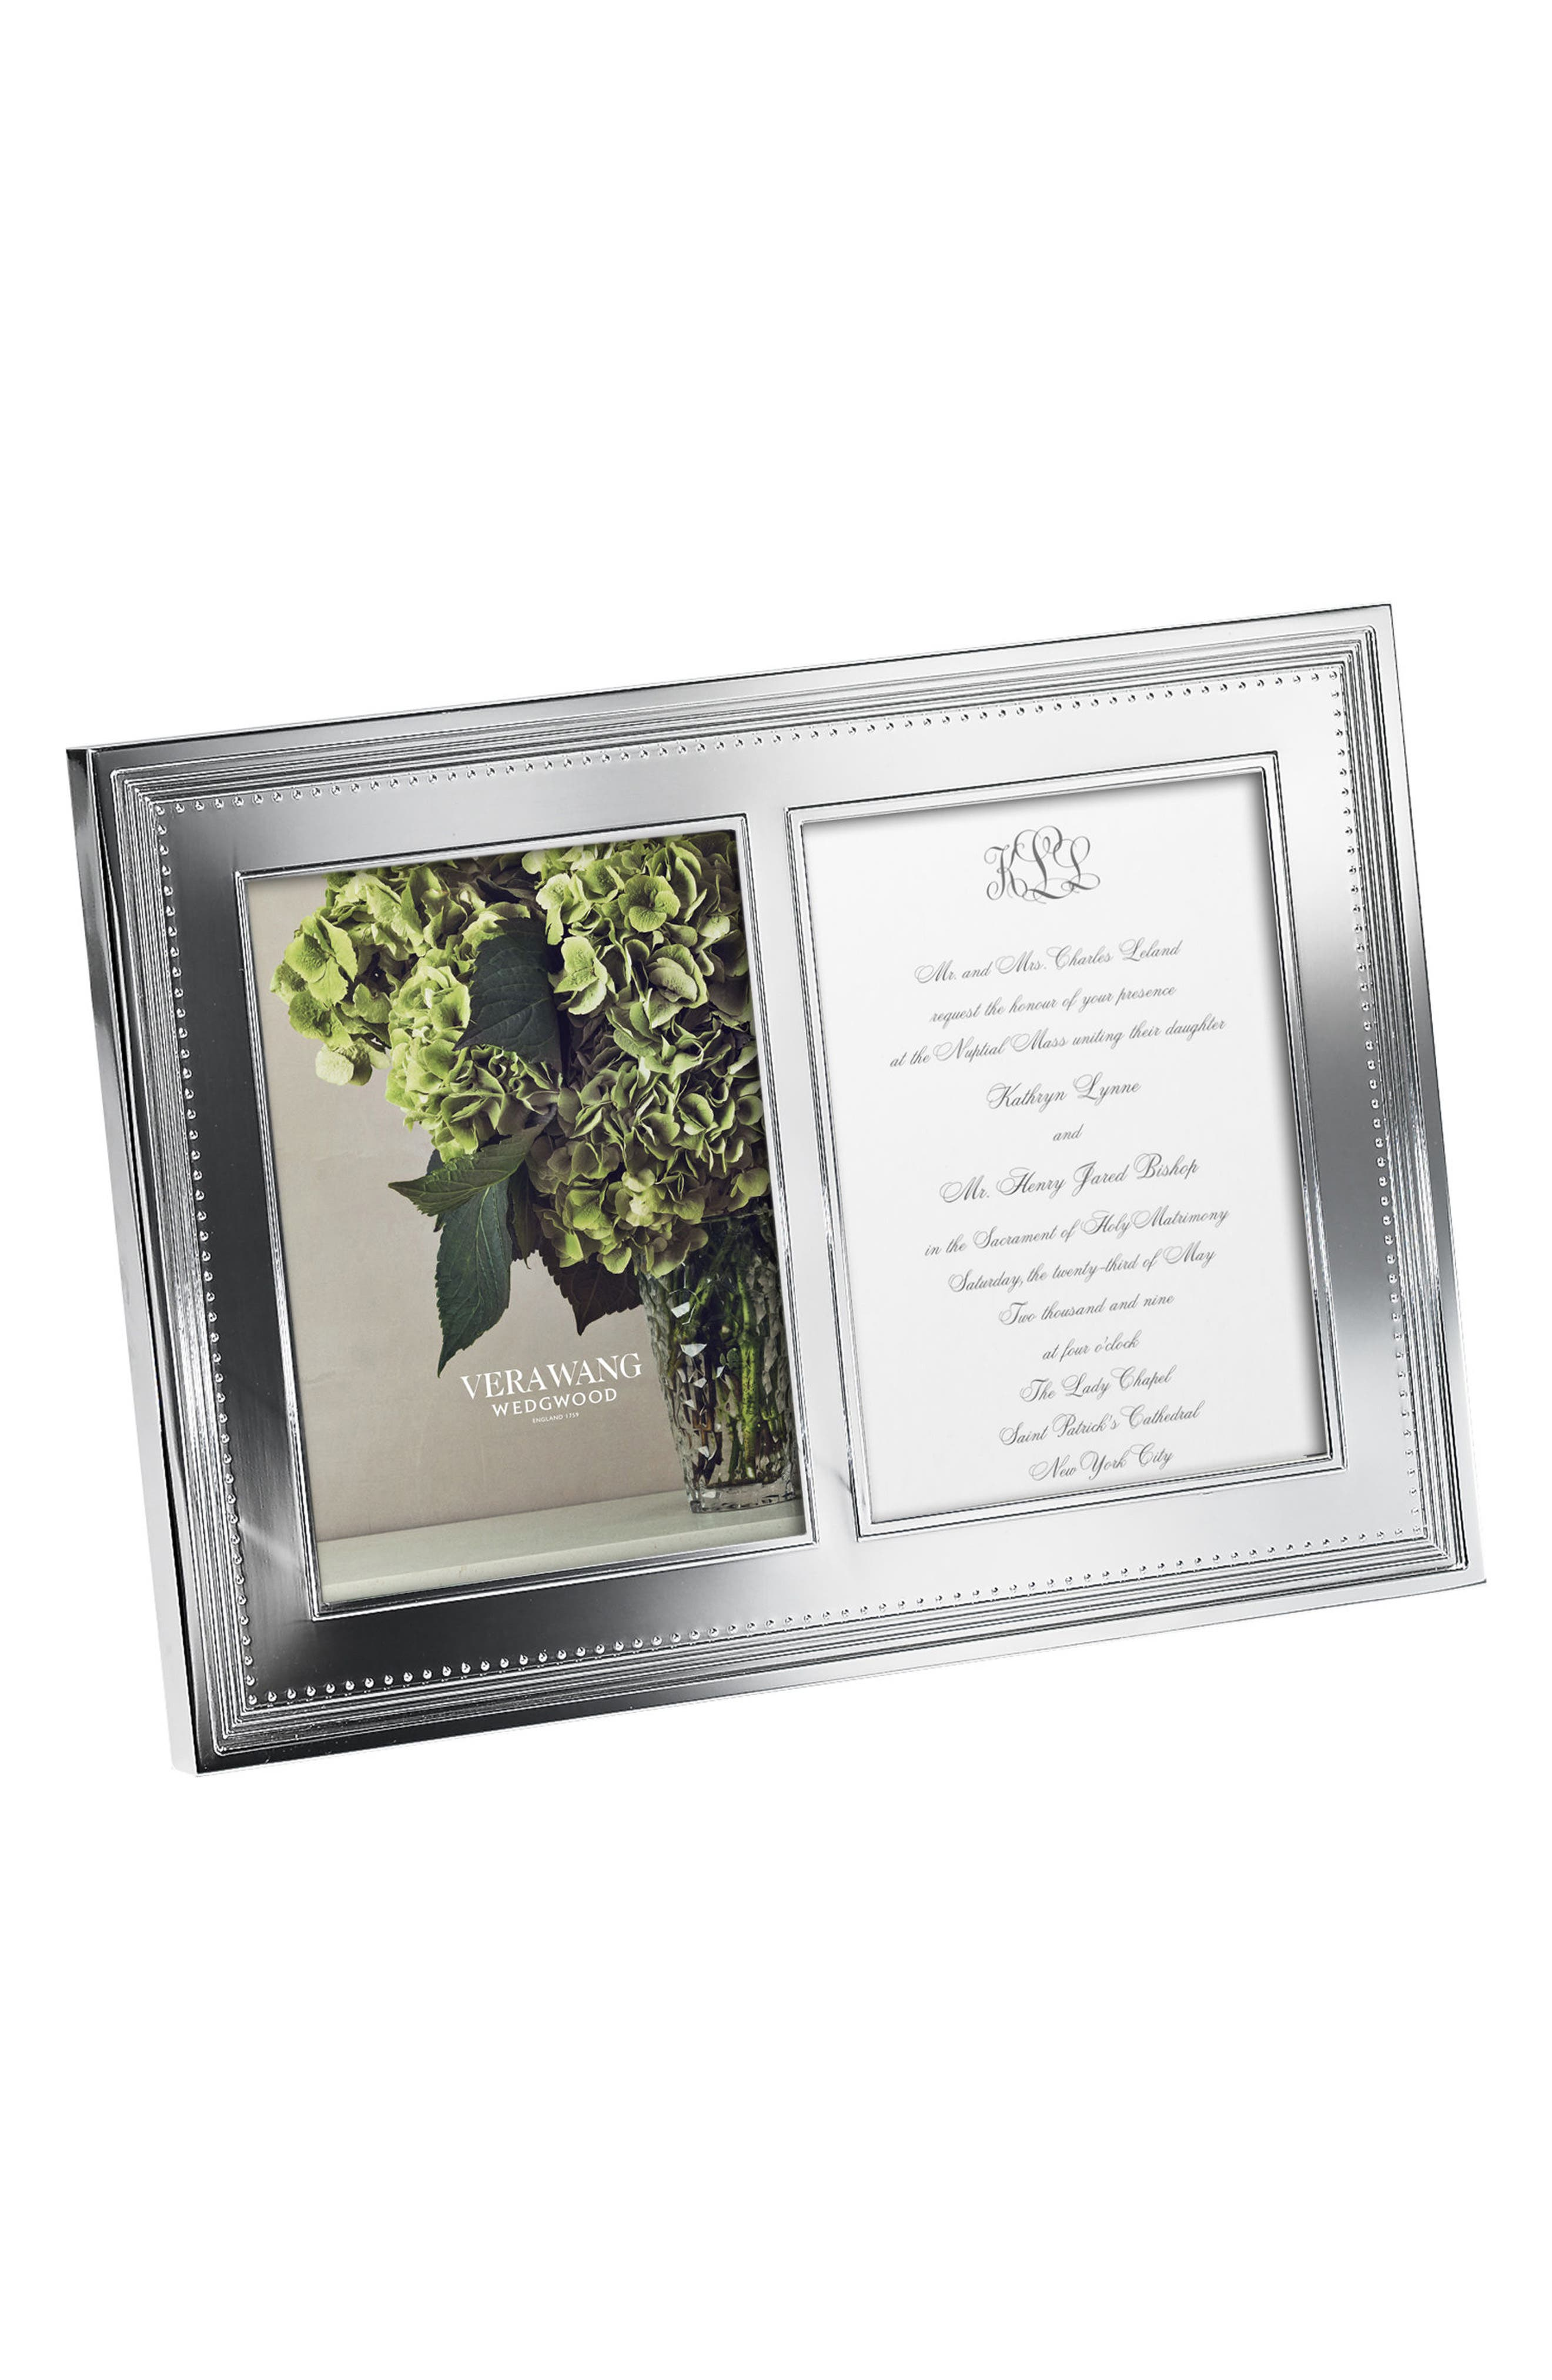 Main Image - Vera Wang x Wedgwood Grosgrain Double Picture Frame